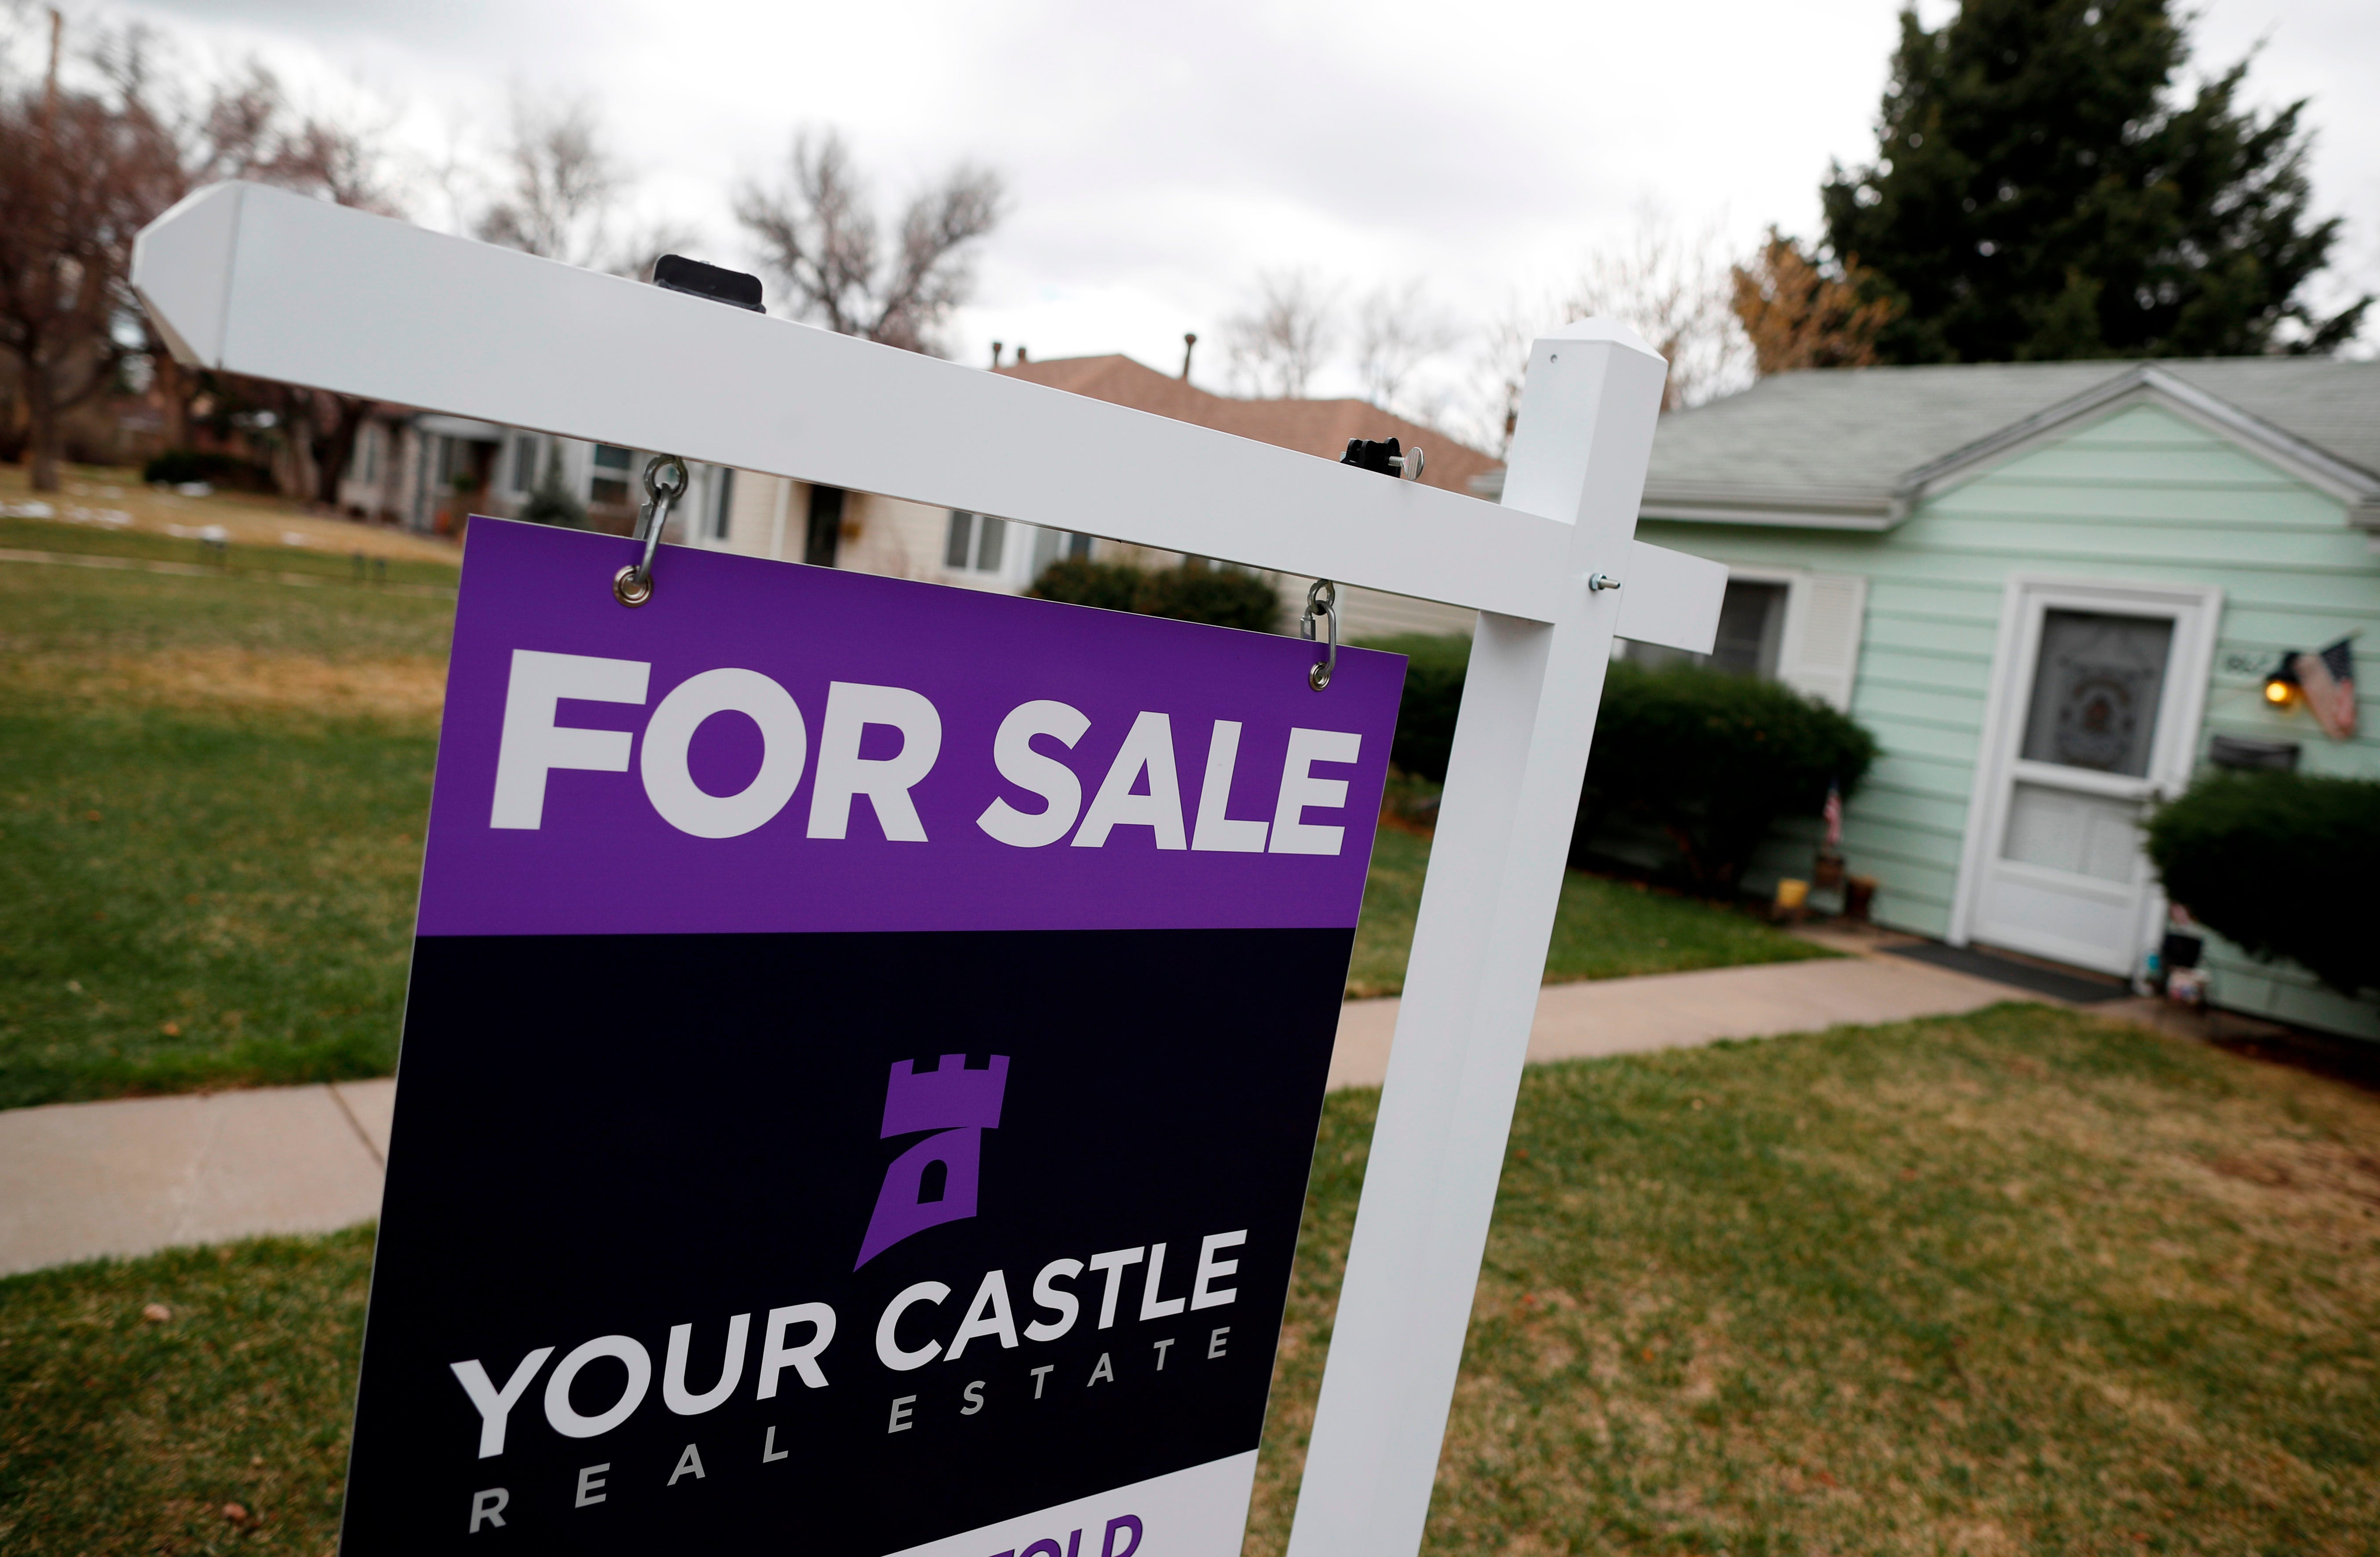 Mortgages, other loans get pricier as 10-year Treasury rate tops 3% | Burlington Free Press